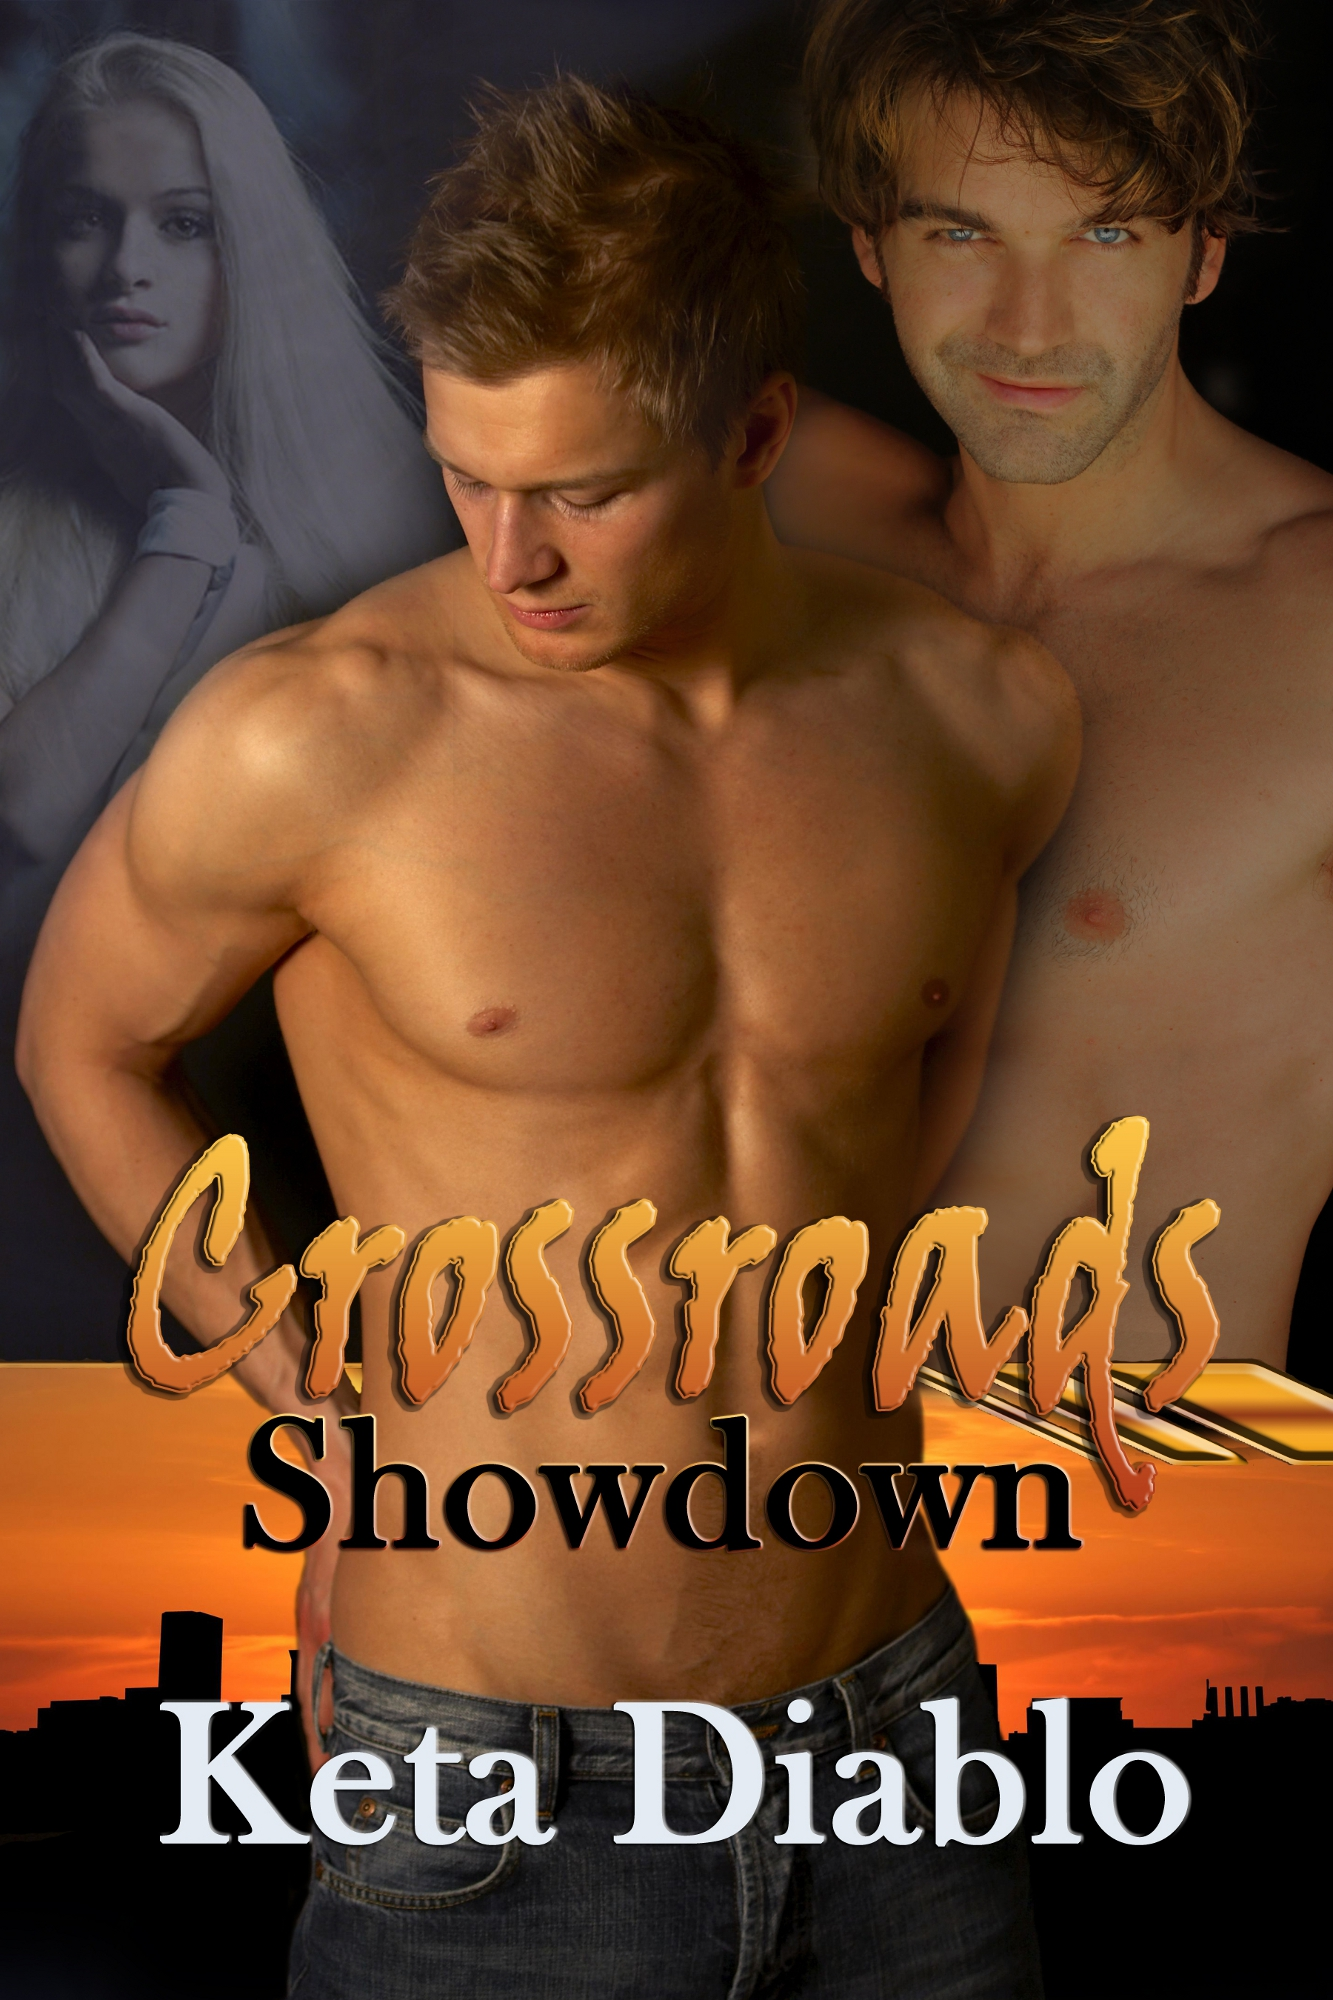 Crossroads:Showdown